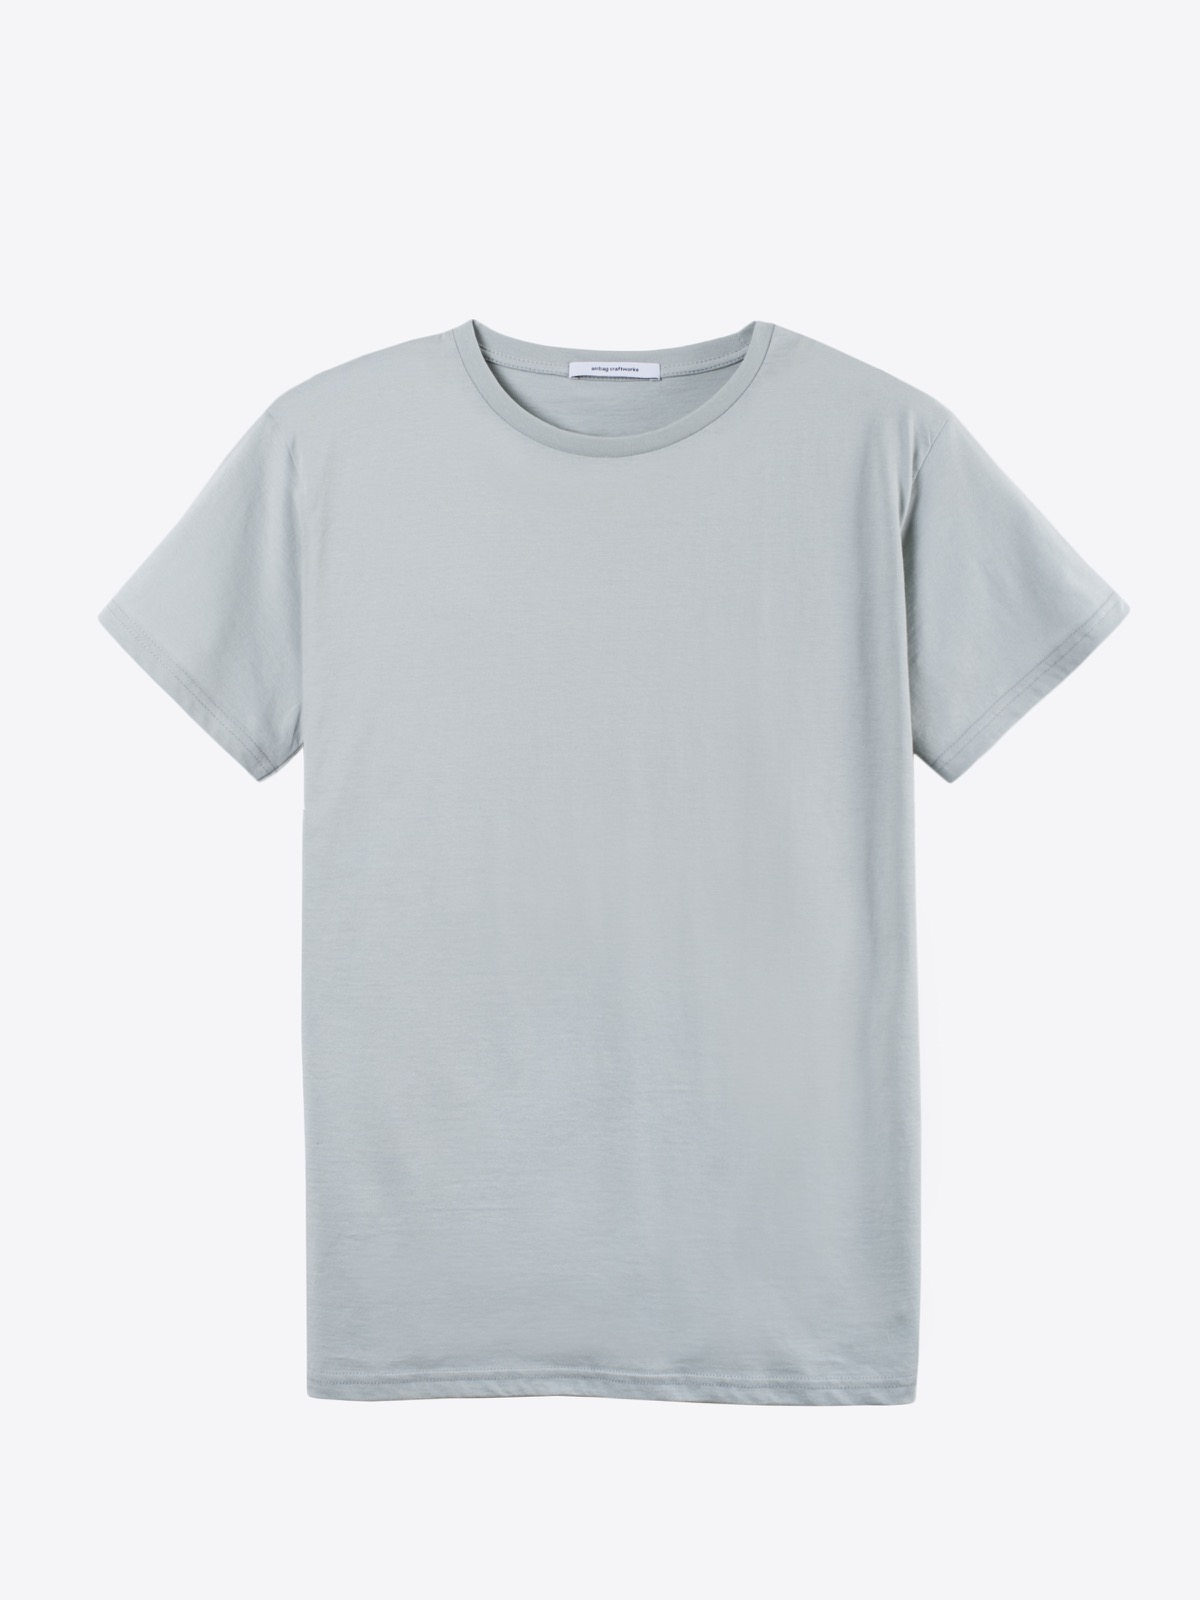 airbag craftworks  t 01 blank | mirage grey